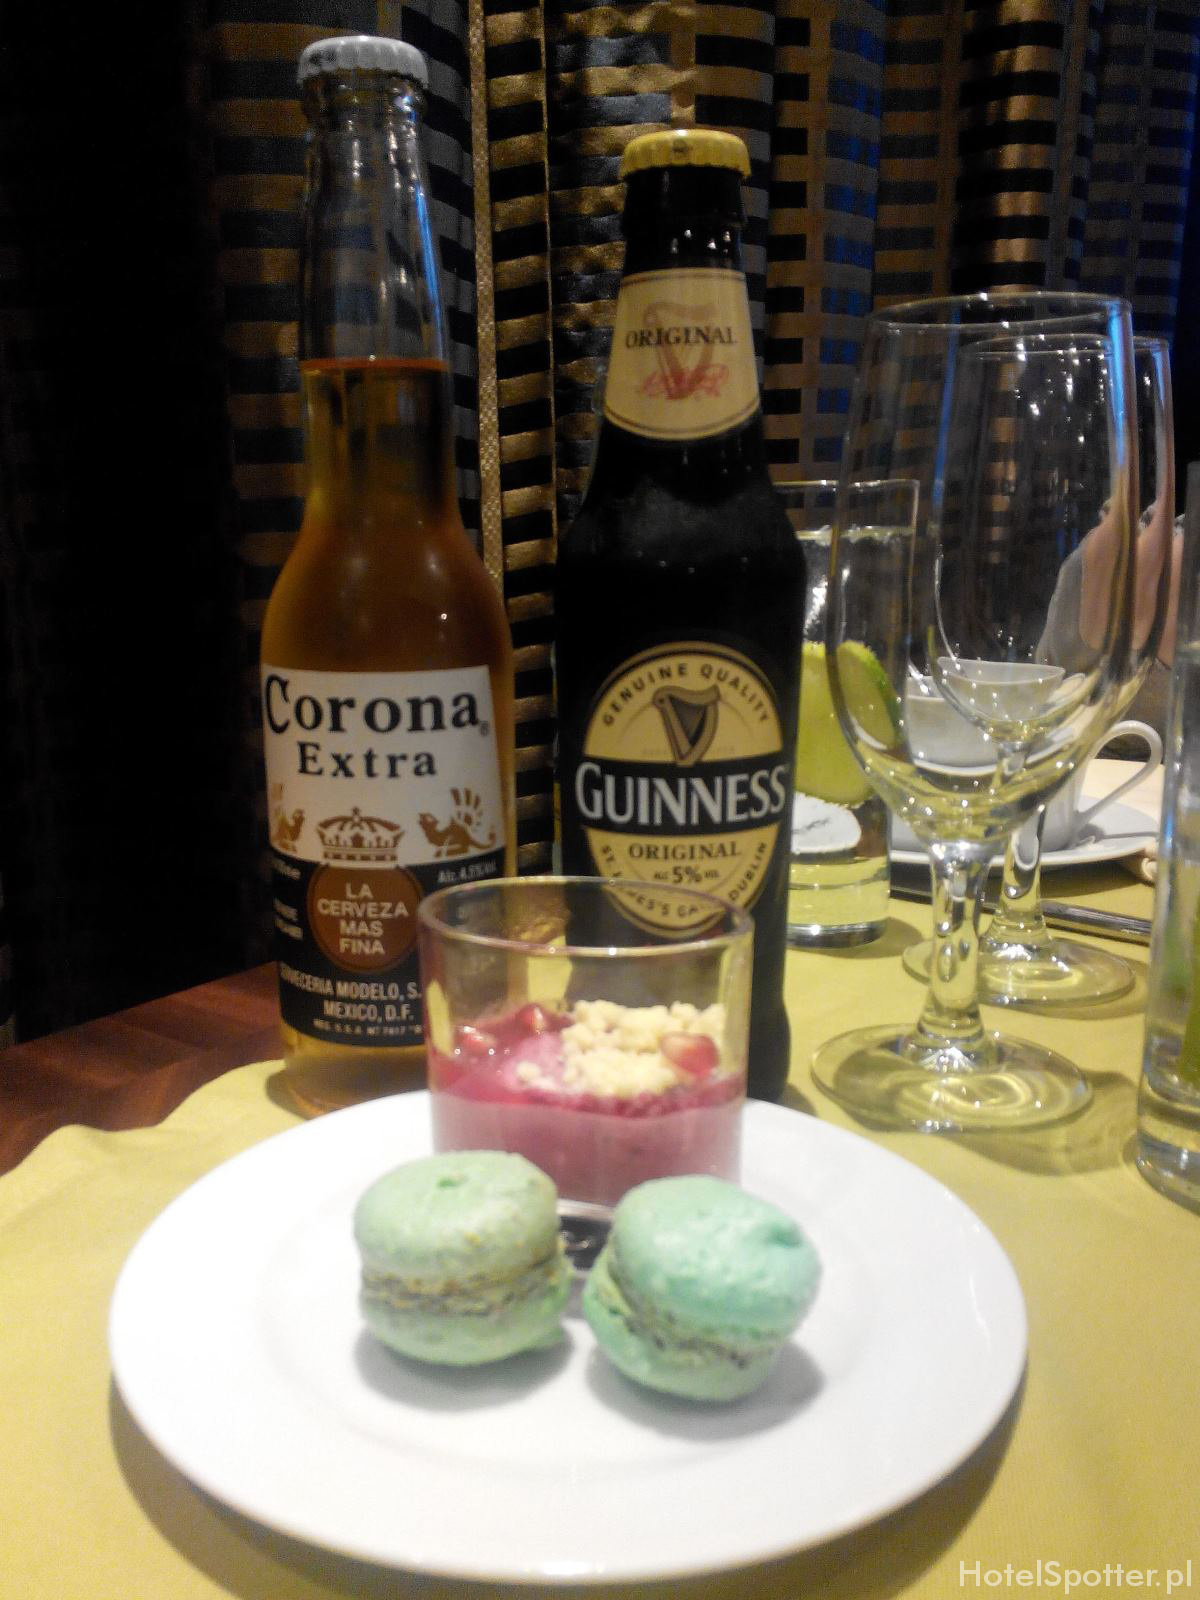 InterContinental Warsaw Warszawa Club Lounge piwo Guinness i Corona